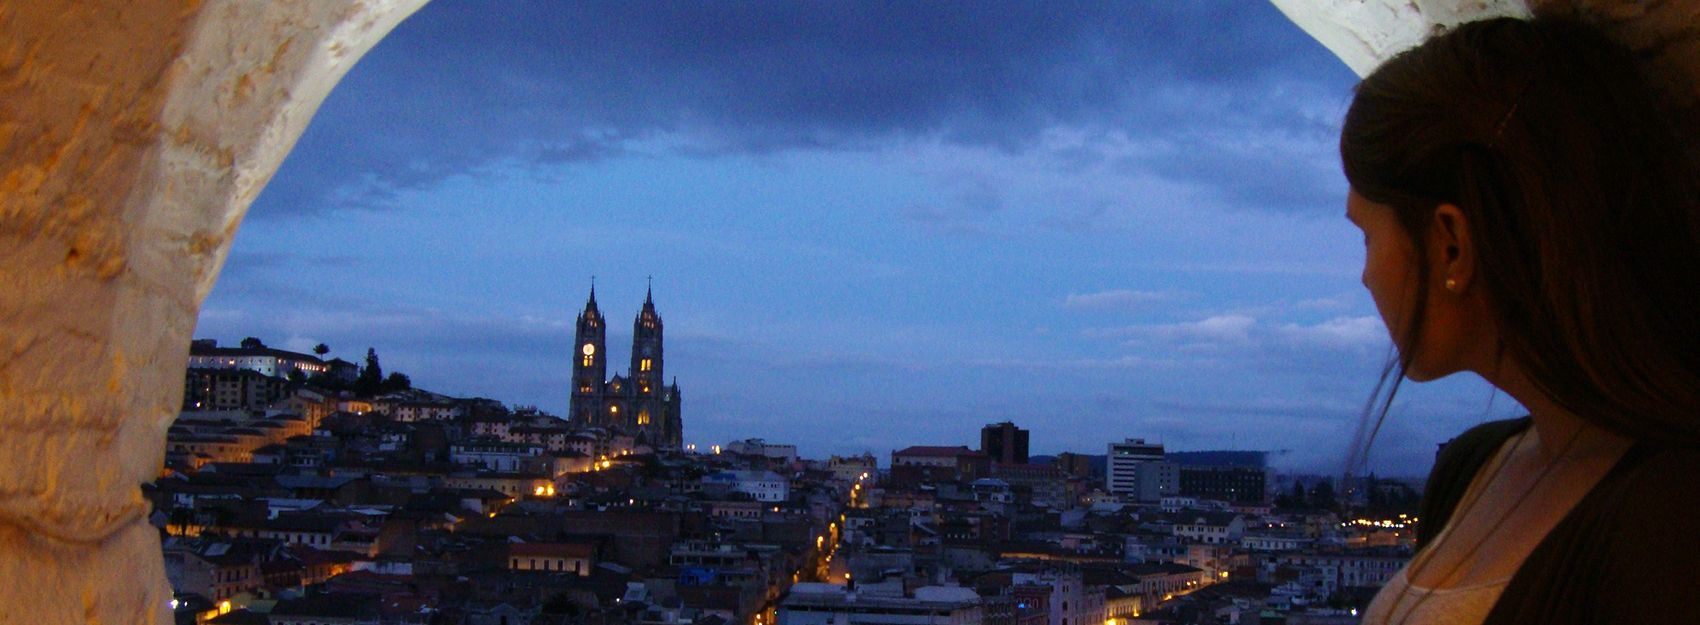 Quito study abroad student overlooking the city at night from a circular look out